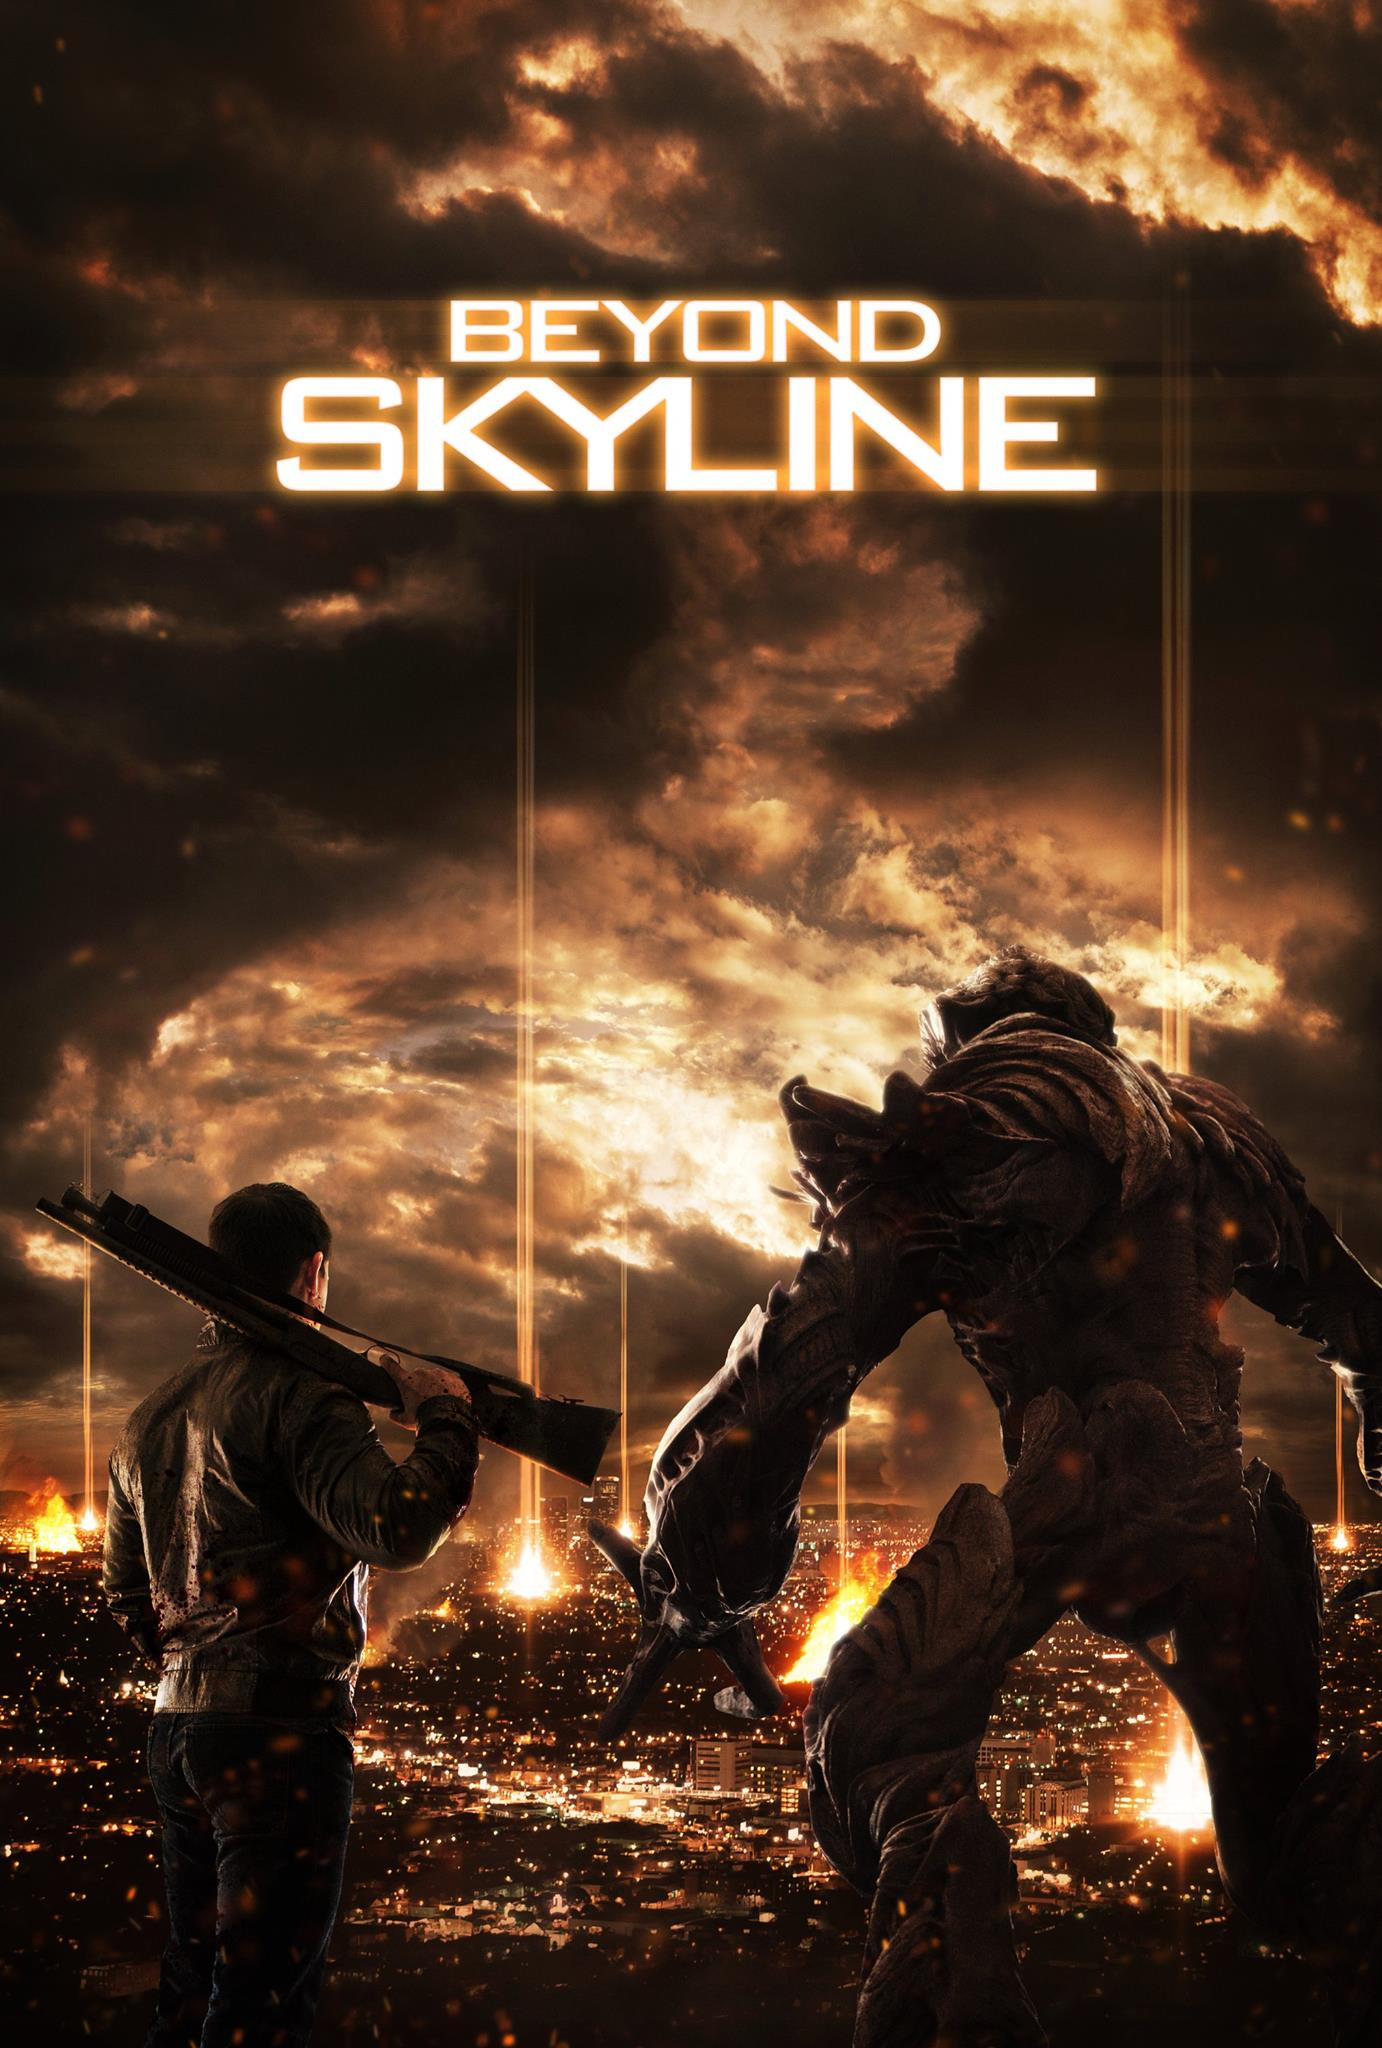 beyond skyline trailer